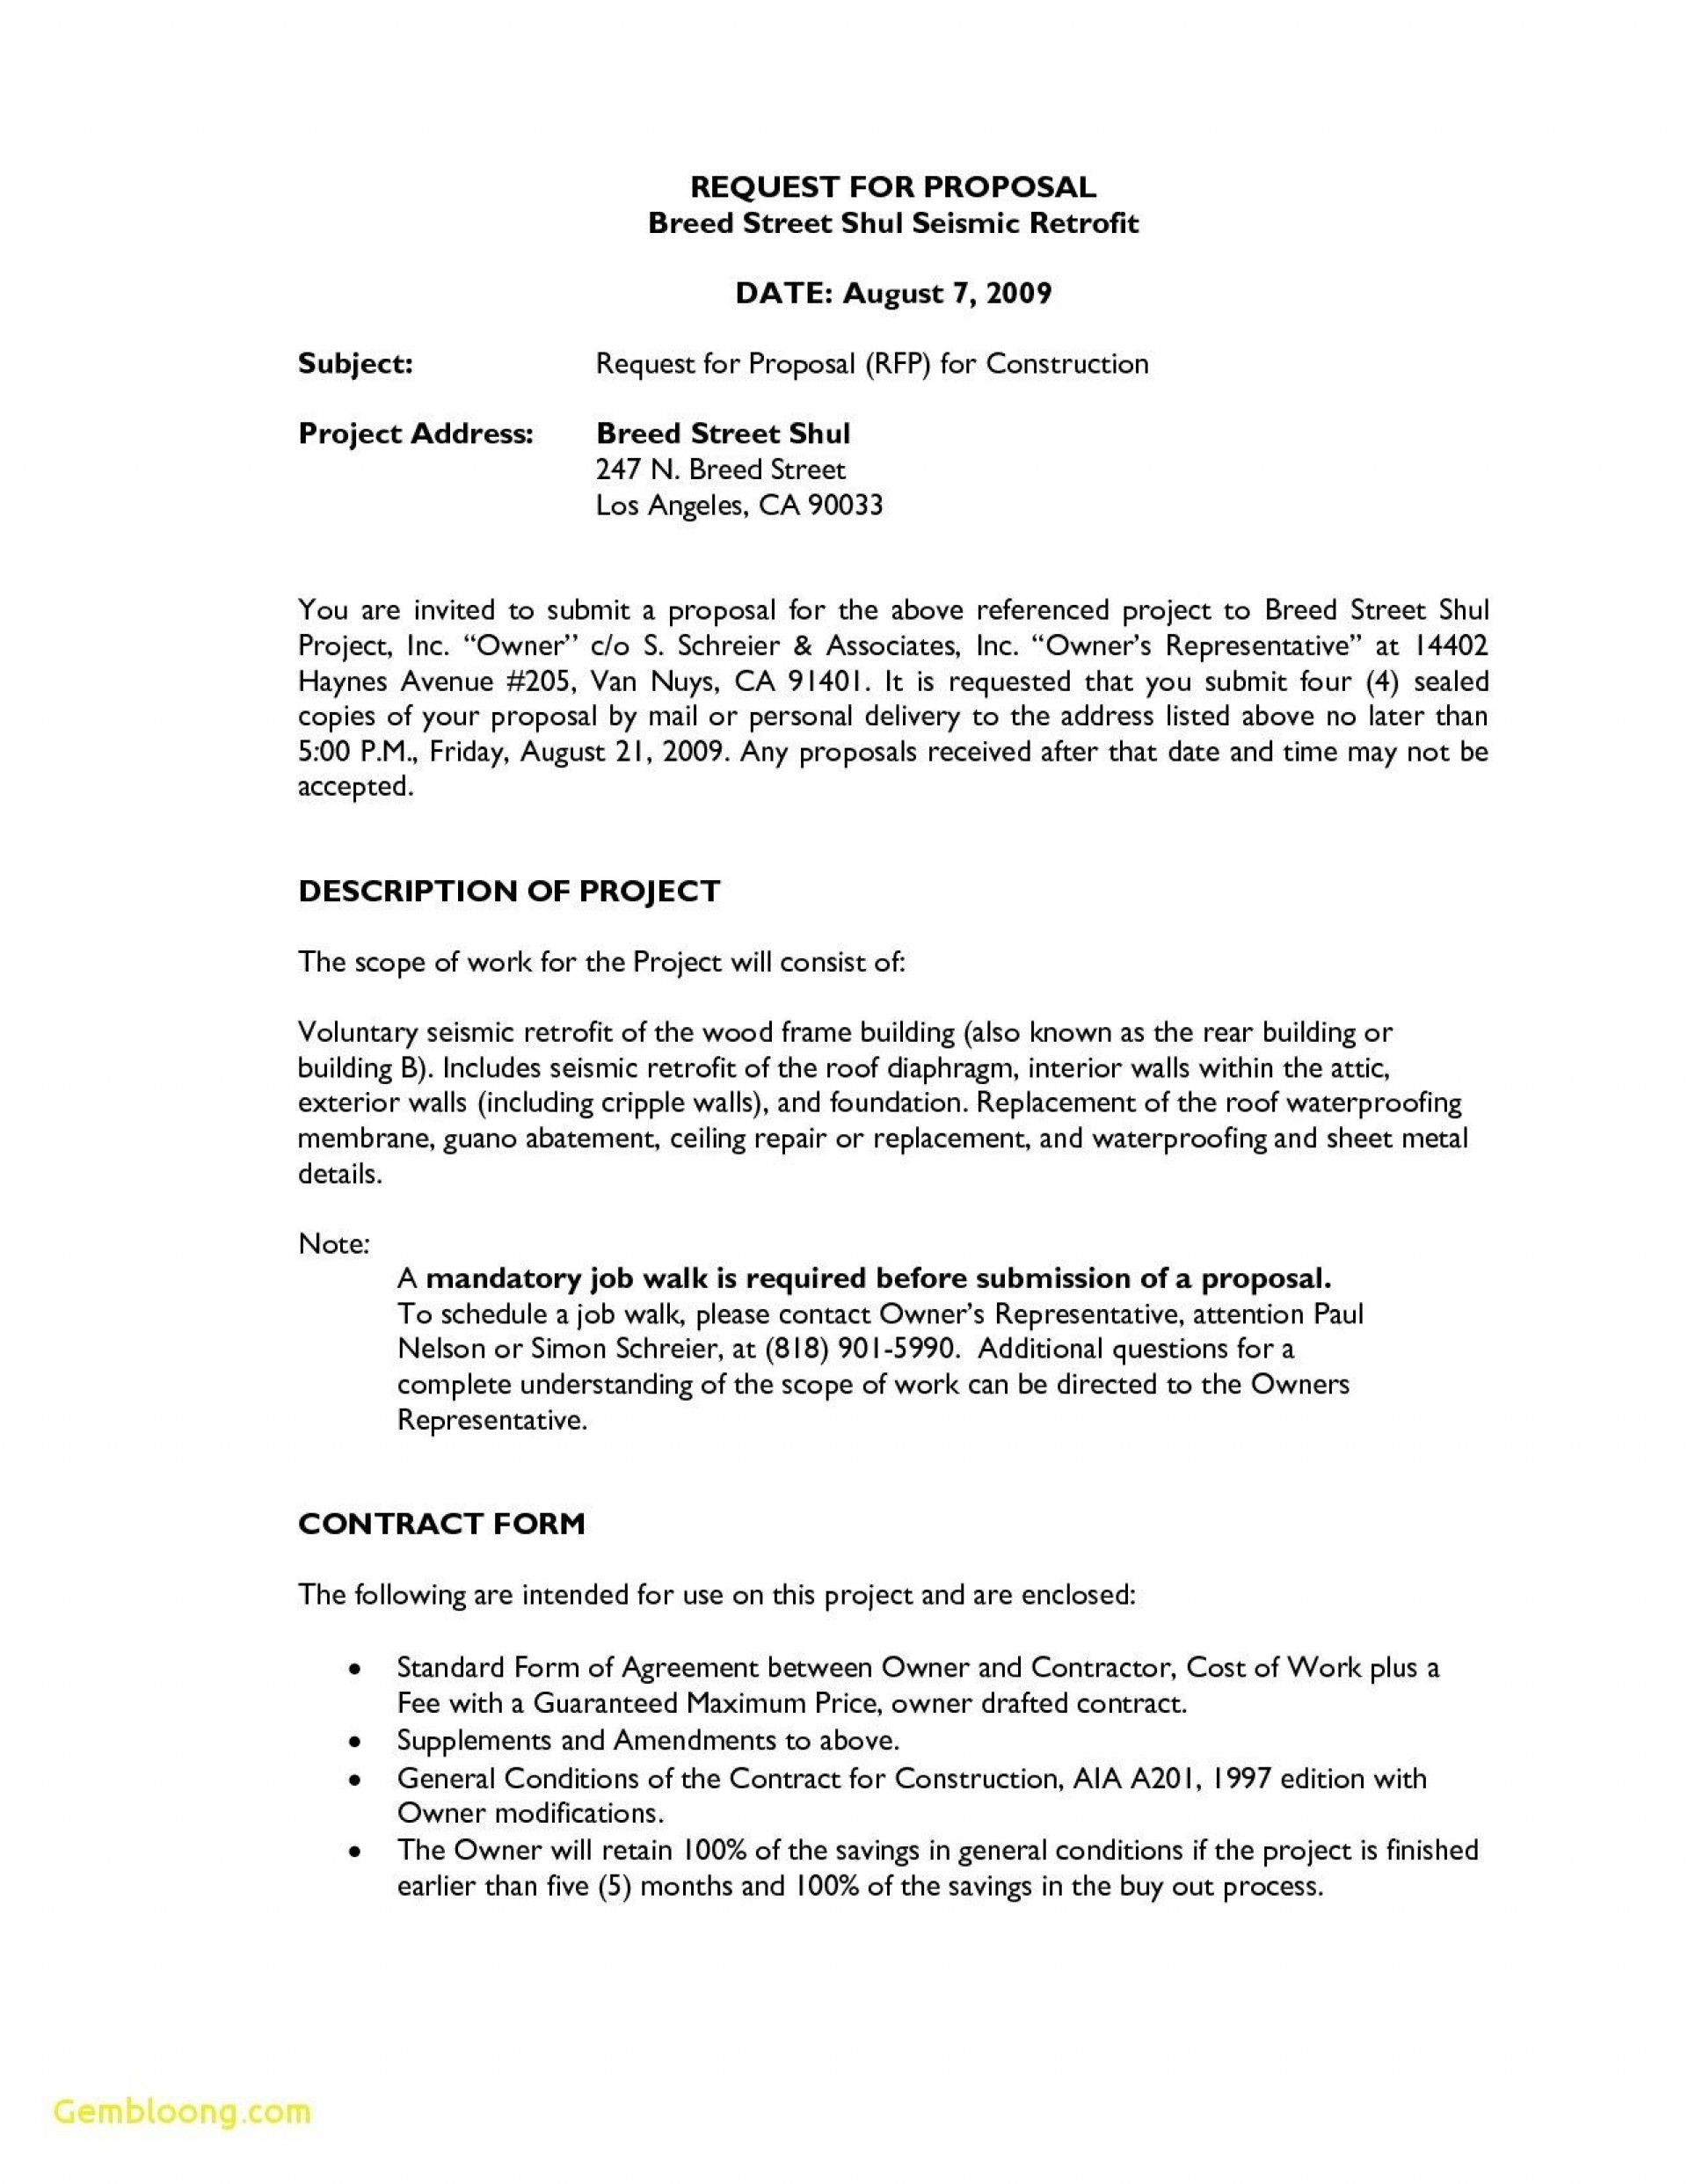 007 Rare Request For Proposal Response Word Template Concept 1920